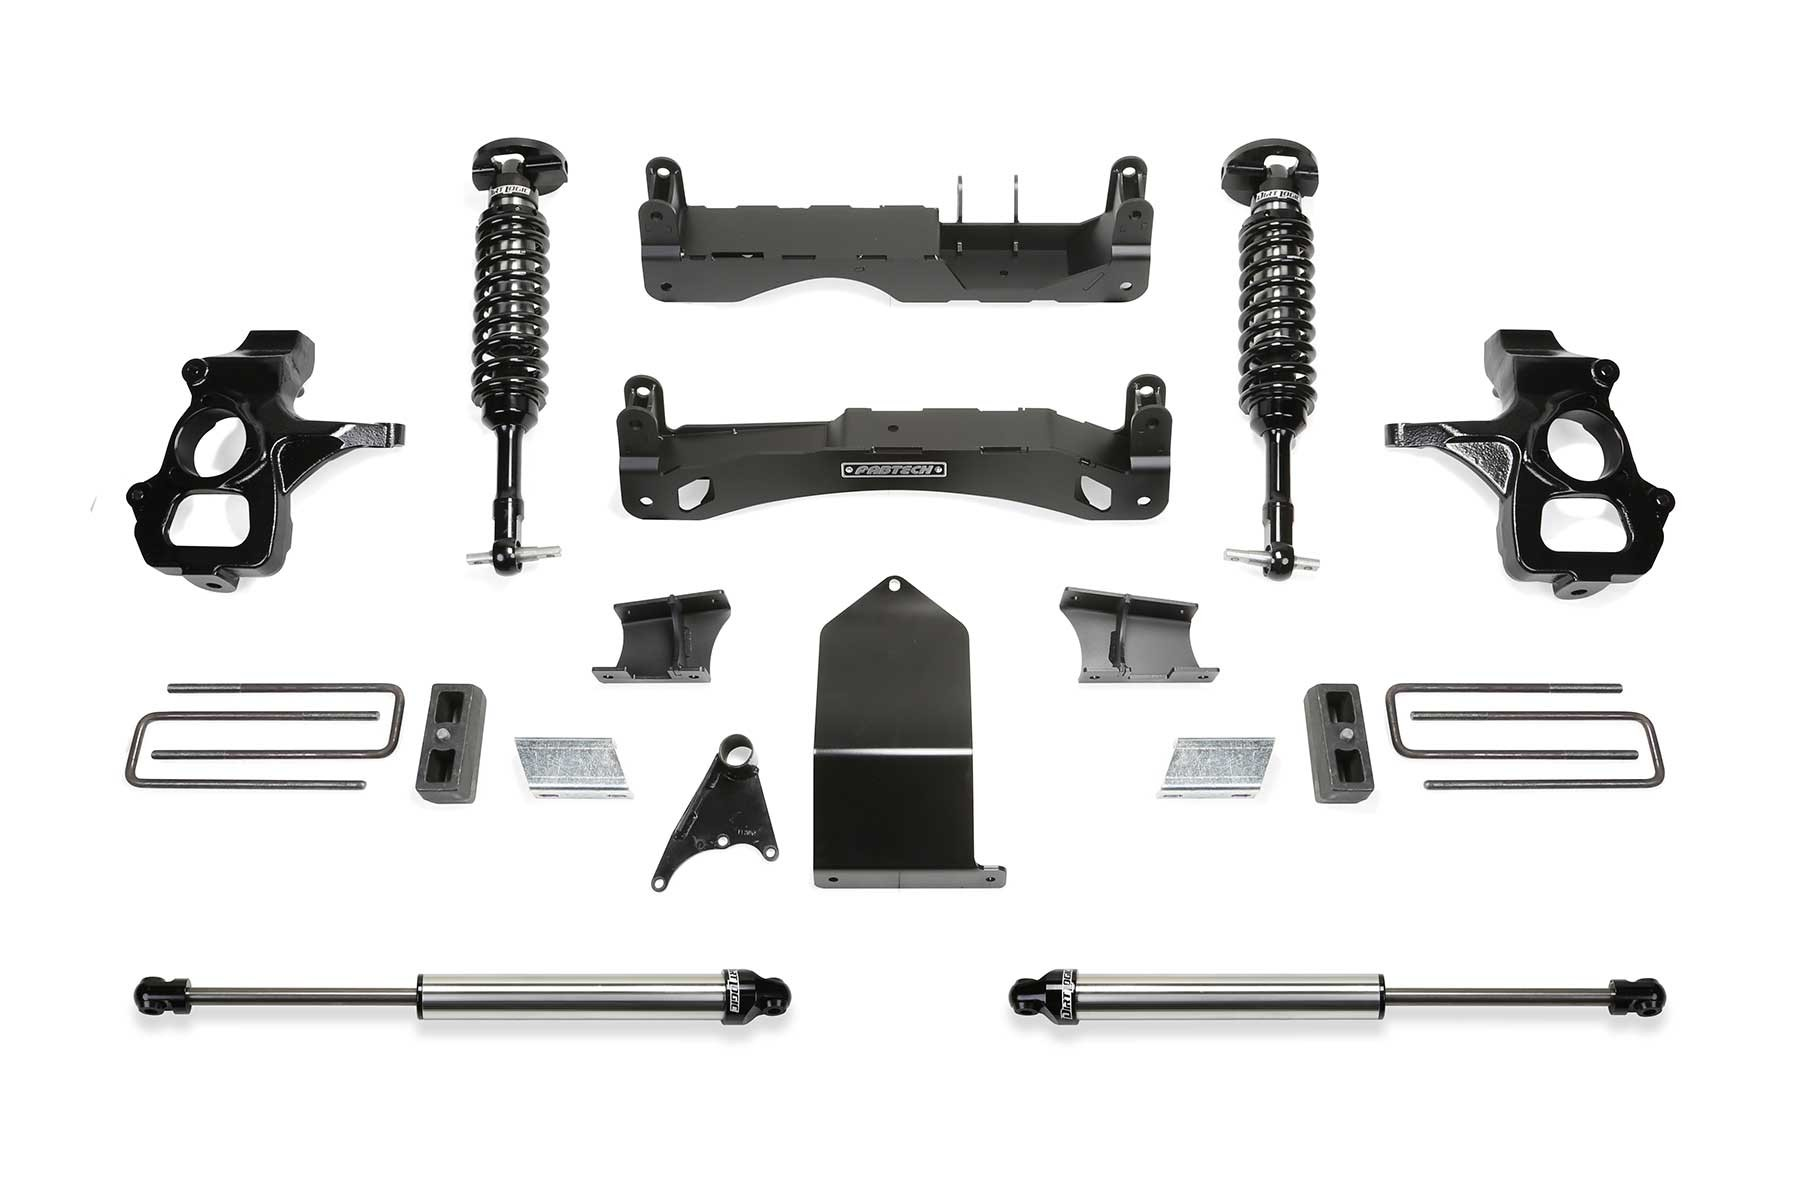 FABTECH 2007-18 GM C/K1500- 4″ PERFORMANCE SYSTEM W/ FRONT DIRT LOGIC 2.5 COILOVERS & REAR DIRT LOGIC 2.25 SHOCKS